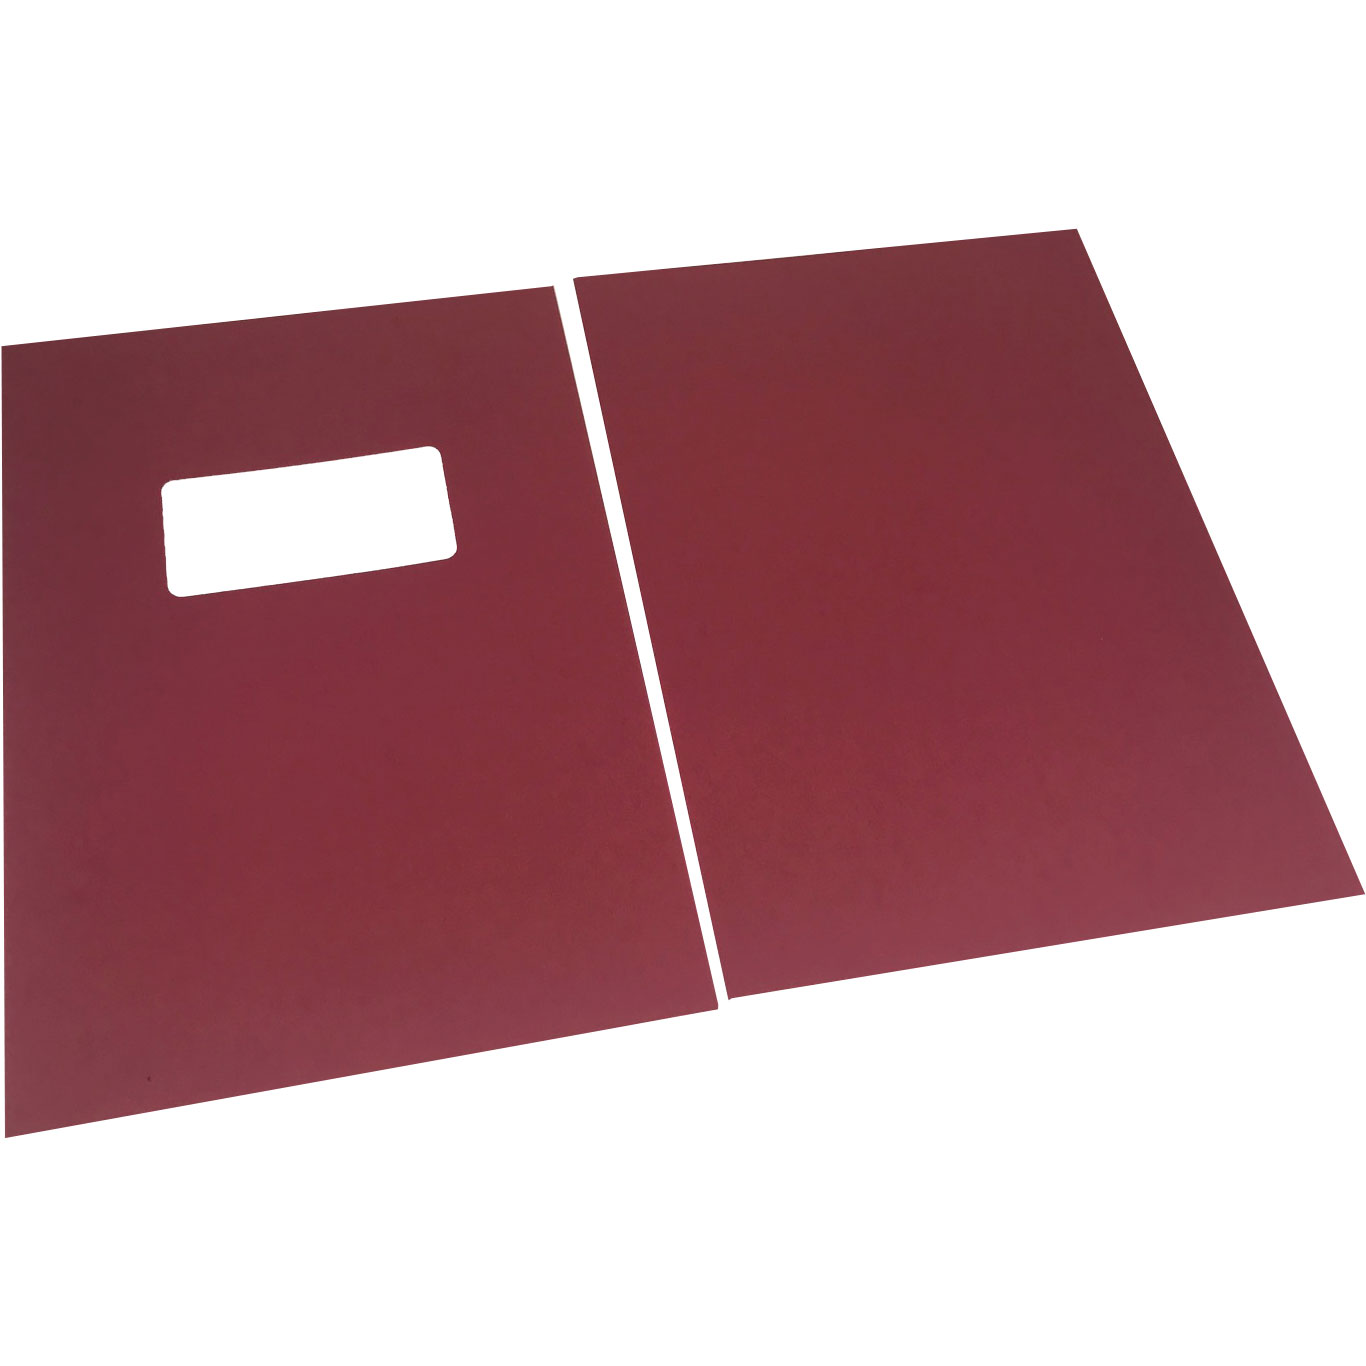 Dark Red Linen A4 Binding Covers - Window Cut-Out (500)